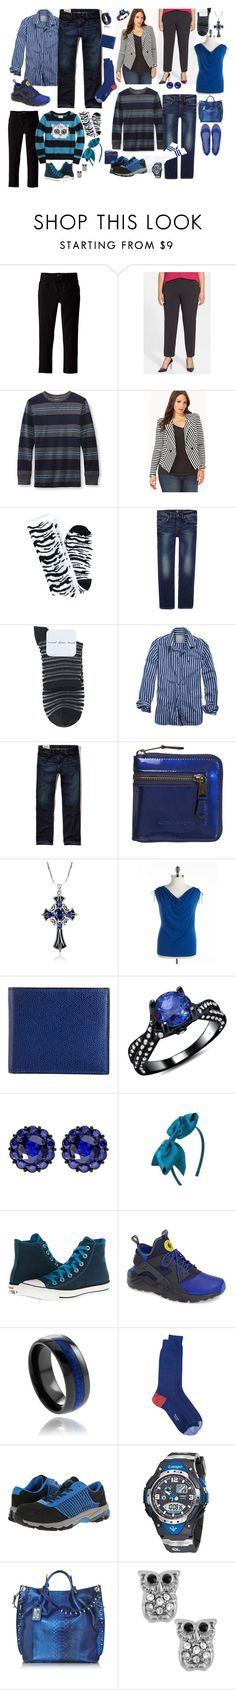 """blue stripes"" by sterlingkitten on Polyvore featuring The Children's Place, MICHAEL Michael Kors, Forever 21, 7 For All Mankind, Hansel from Basel, American Eagle Outfitters, Hollister Co., Kate Hill, Valextra and Color My Life"